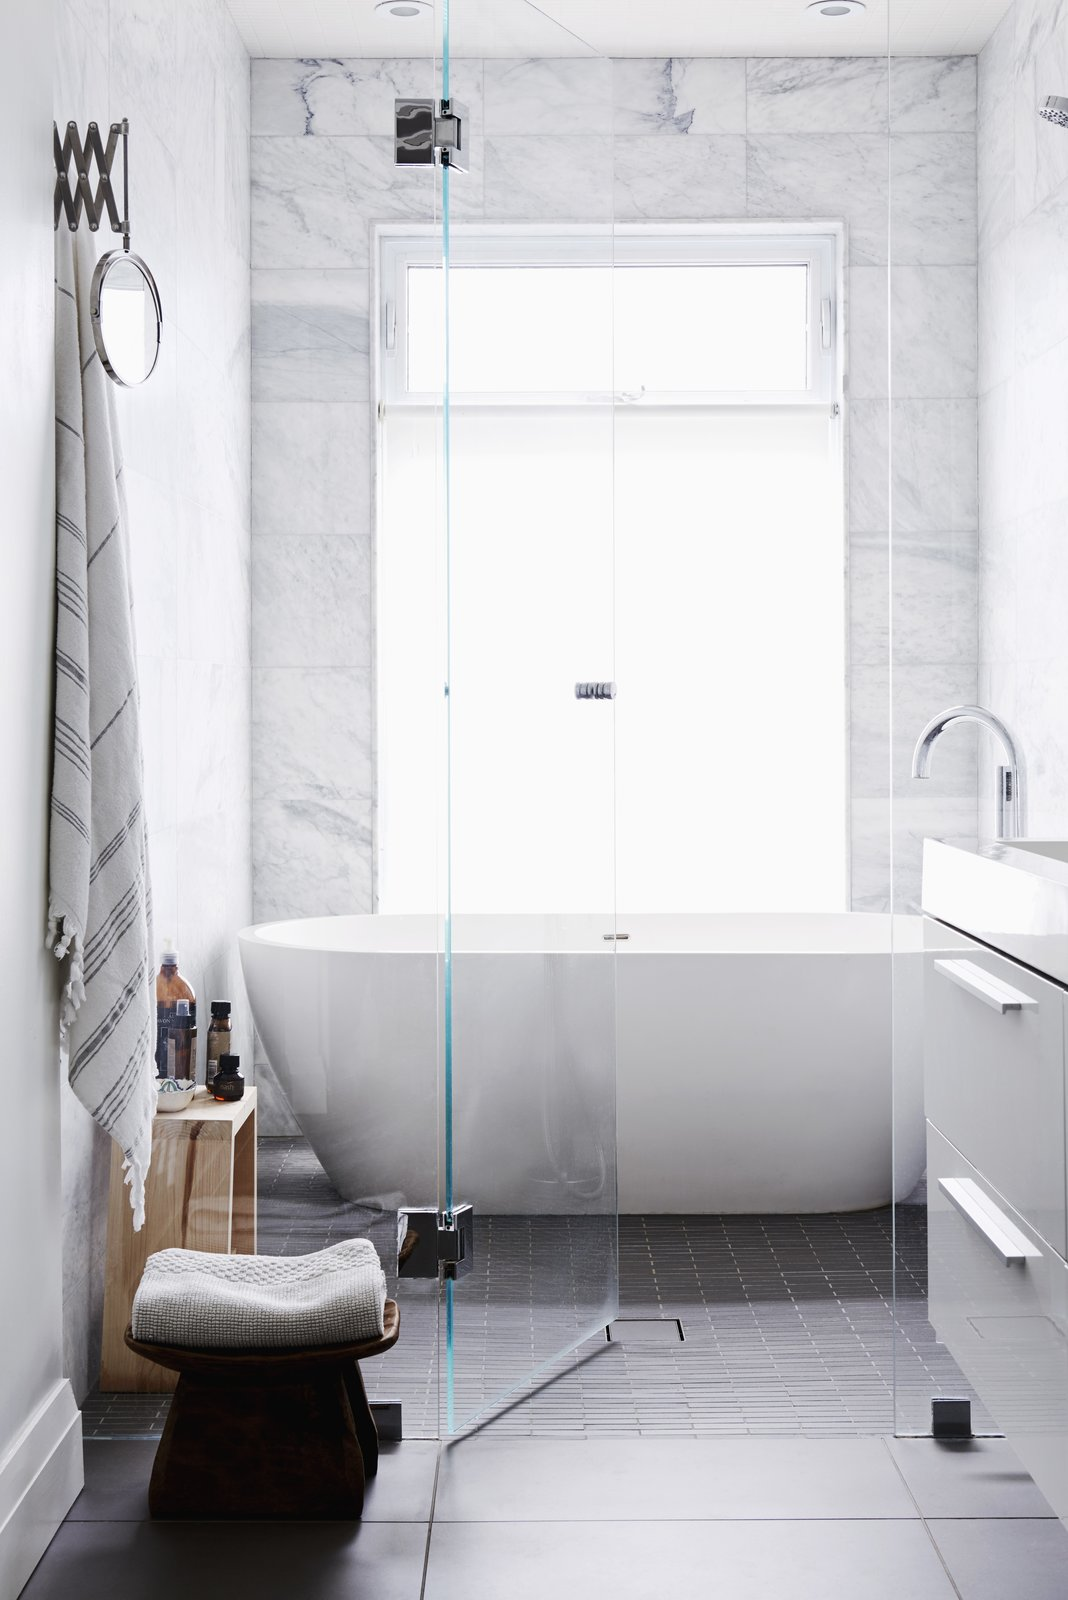 A glass wall divides the wet room from the vanity area. The wet room has a large soaker tub and rain head and is tiled in Carrara marble. The full height window maximizes natural light and allows for a visual link to the outdoors. A neutral palette and clean materials convey a sense of simplicity and calm, perfect for relaxing in the tub.   Tagged: Bath Room, Freestanding Tub, Porcelain Tile Floor, Enclosed Shower, Recessed Lighting, Wall Lighting, Marble Wall, and One Piece Toilet.  Best Photos from Family Bathroom Renovation